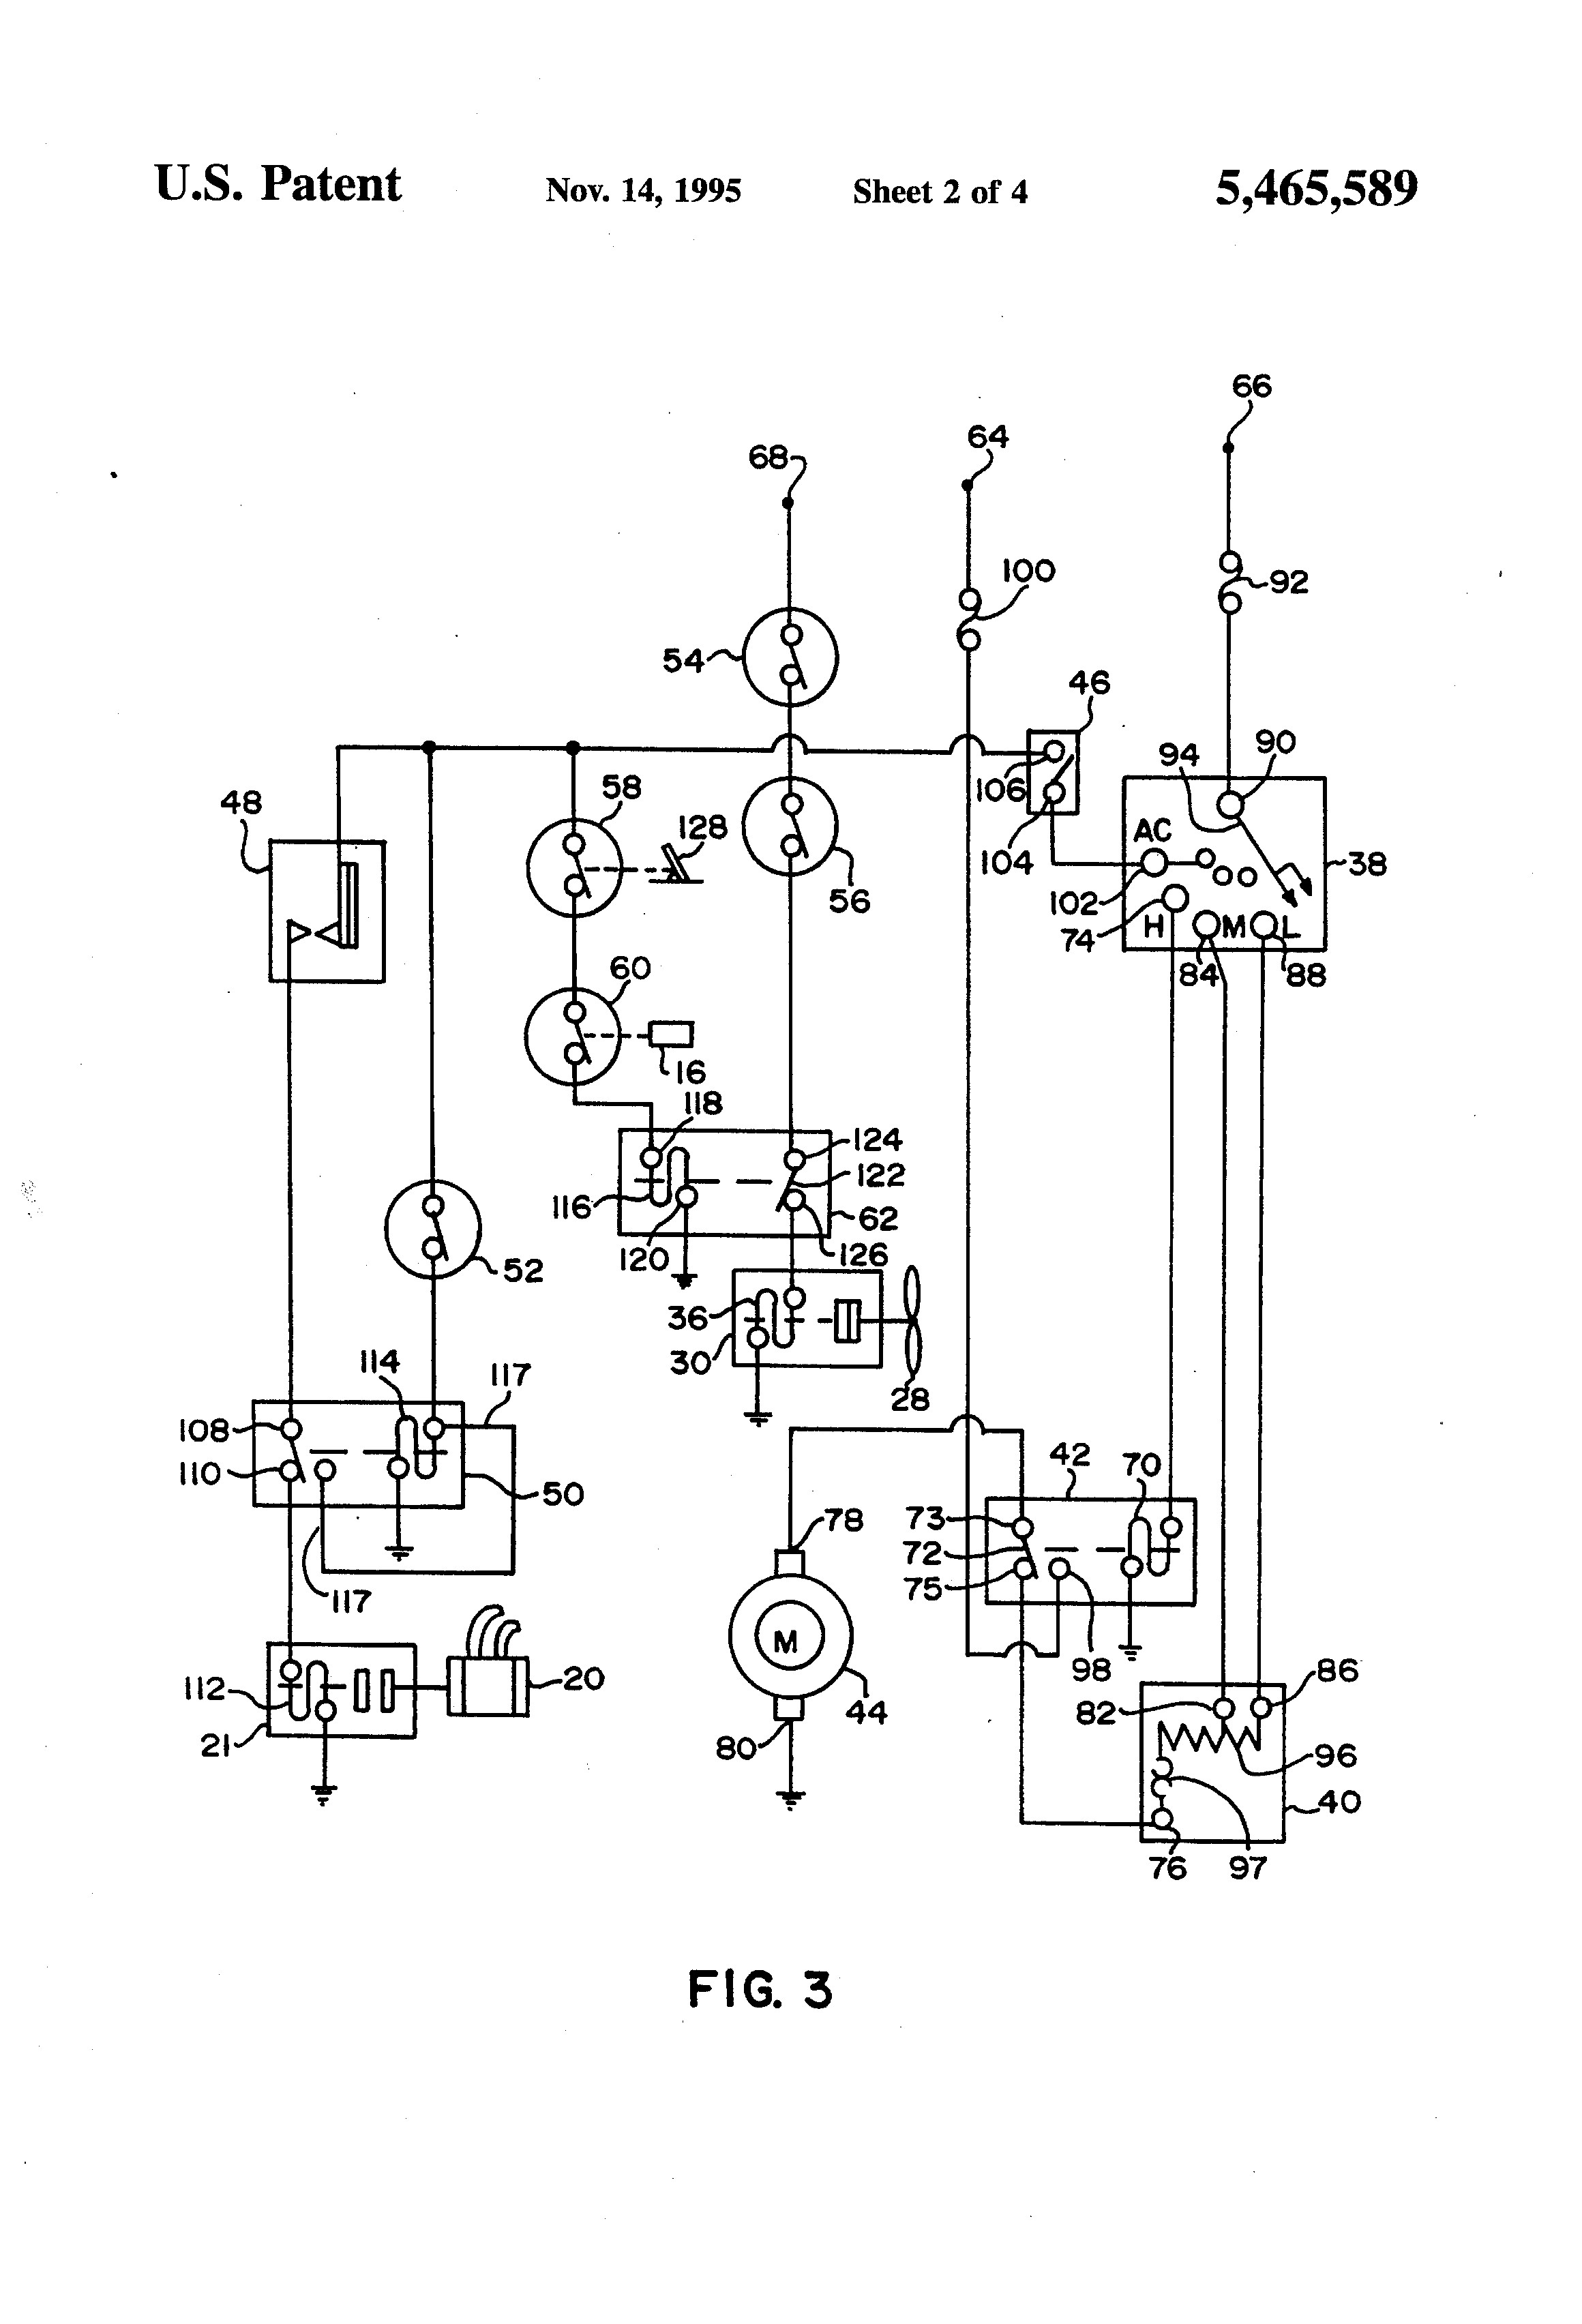 international truck wiring diagram Collection-international 9400i wiring diagram Download 9400 international truck wiring diagrams free 12 s 2-a